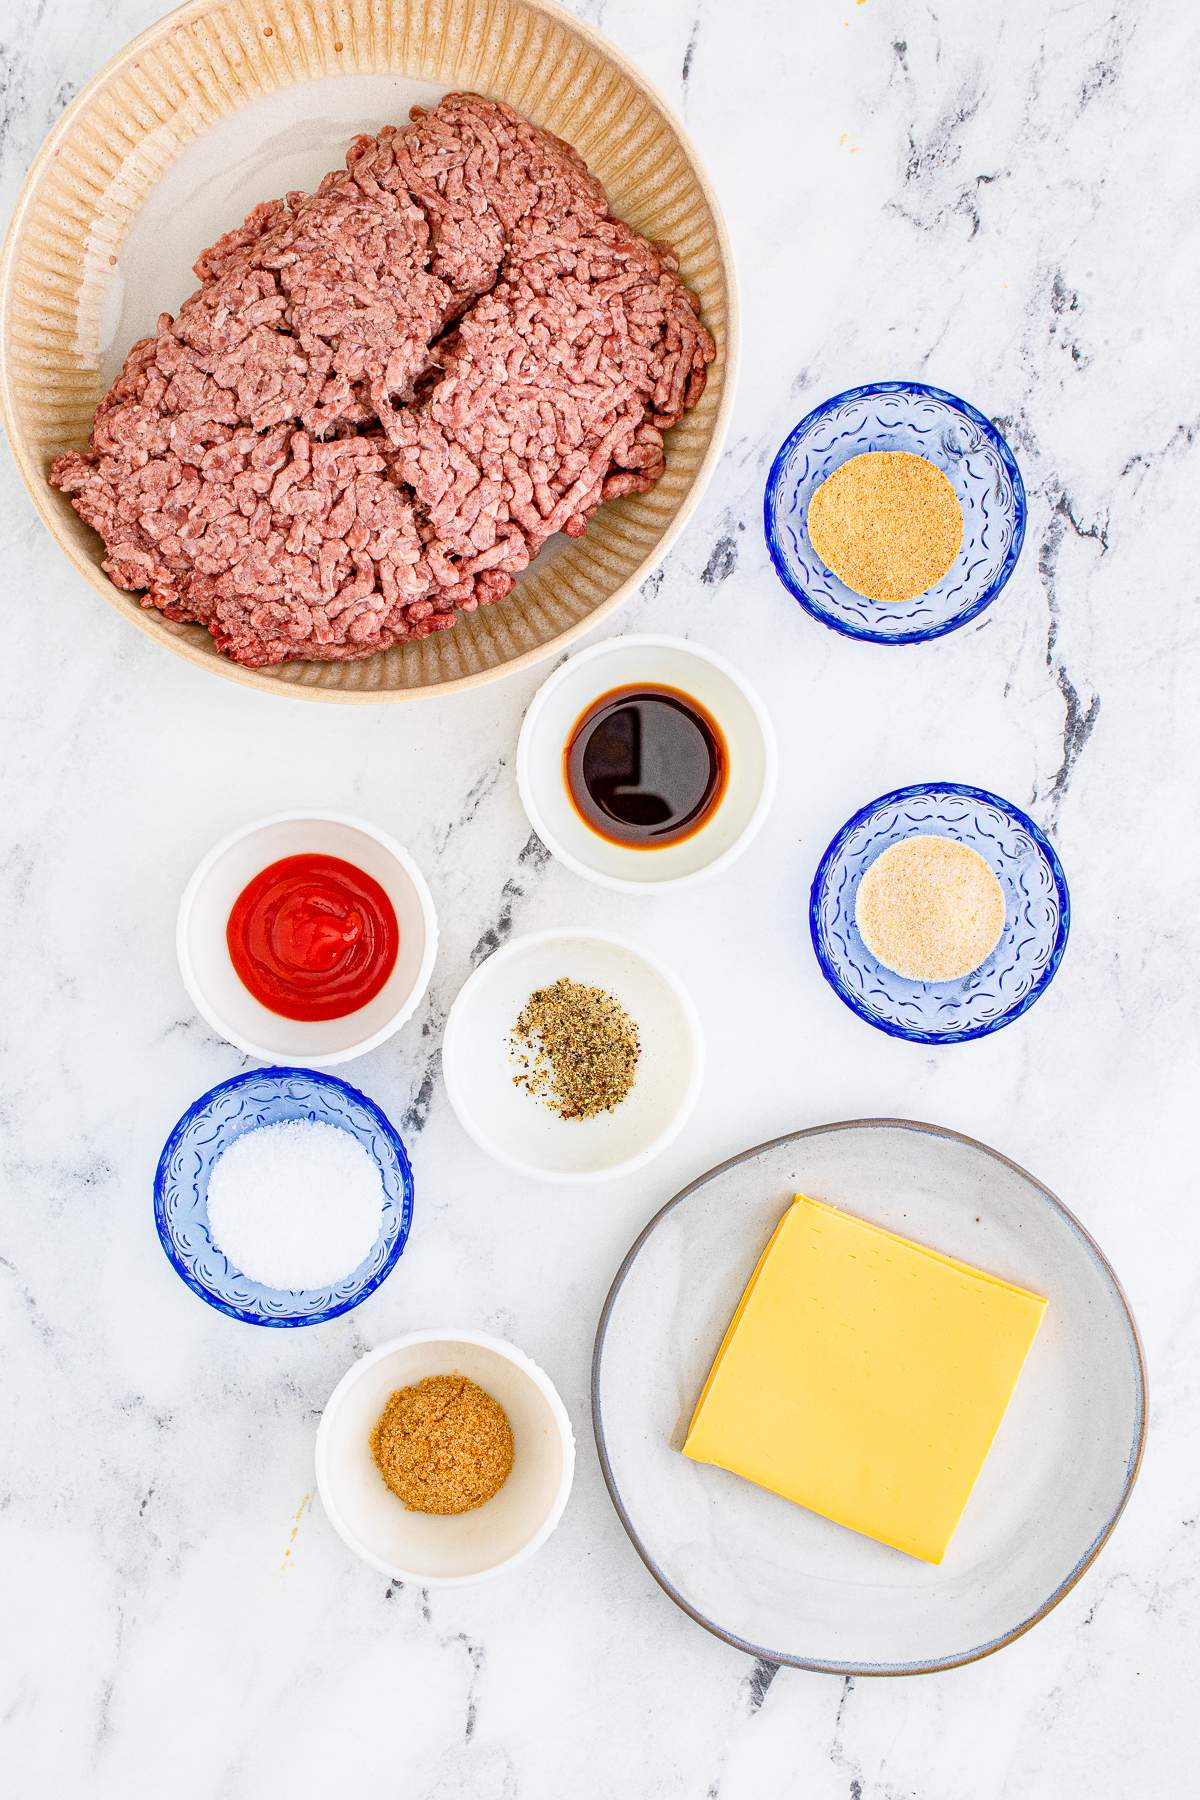 Ingredients needed to make a Cheeseburger